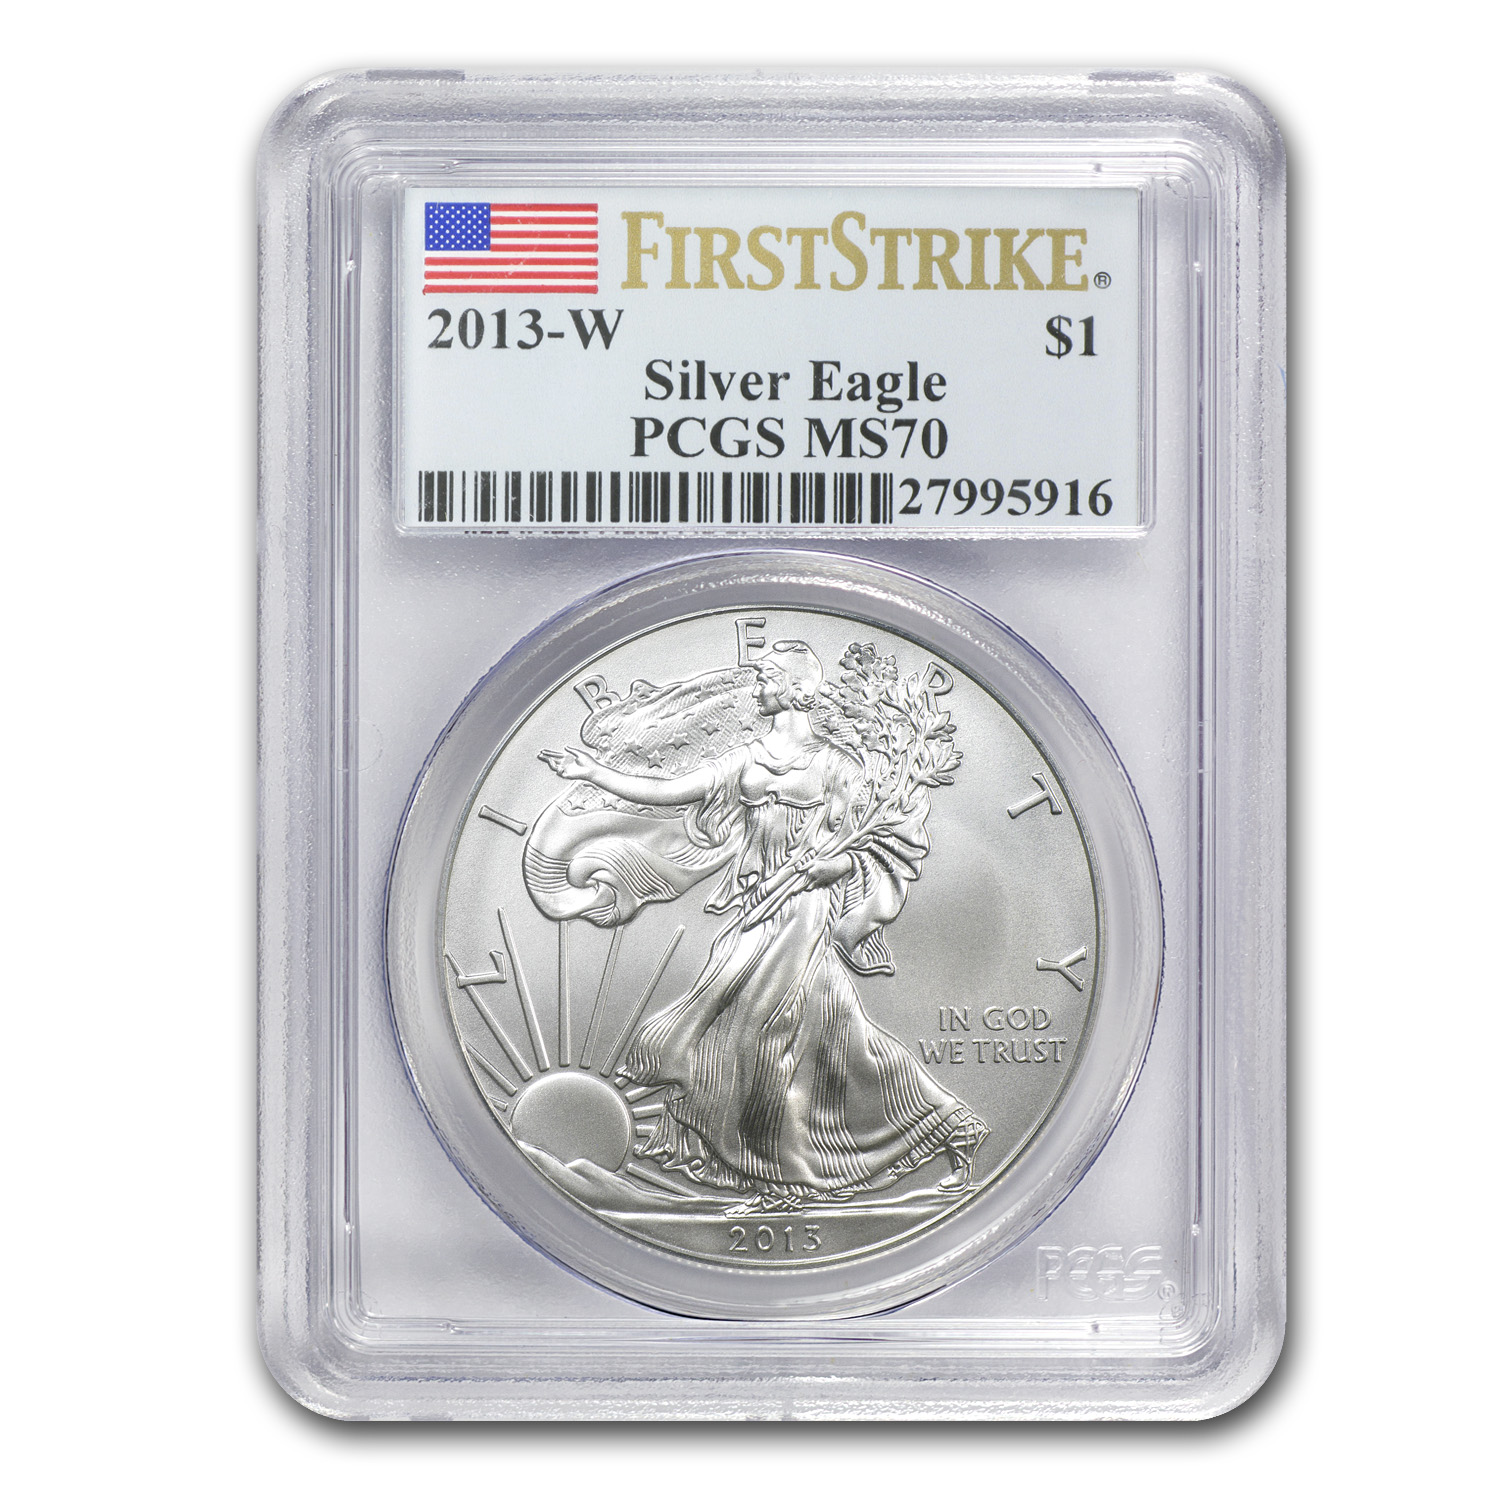 2013 W Burnished Silver American Eagle Ms 70 Pcgs First